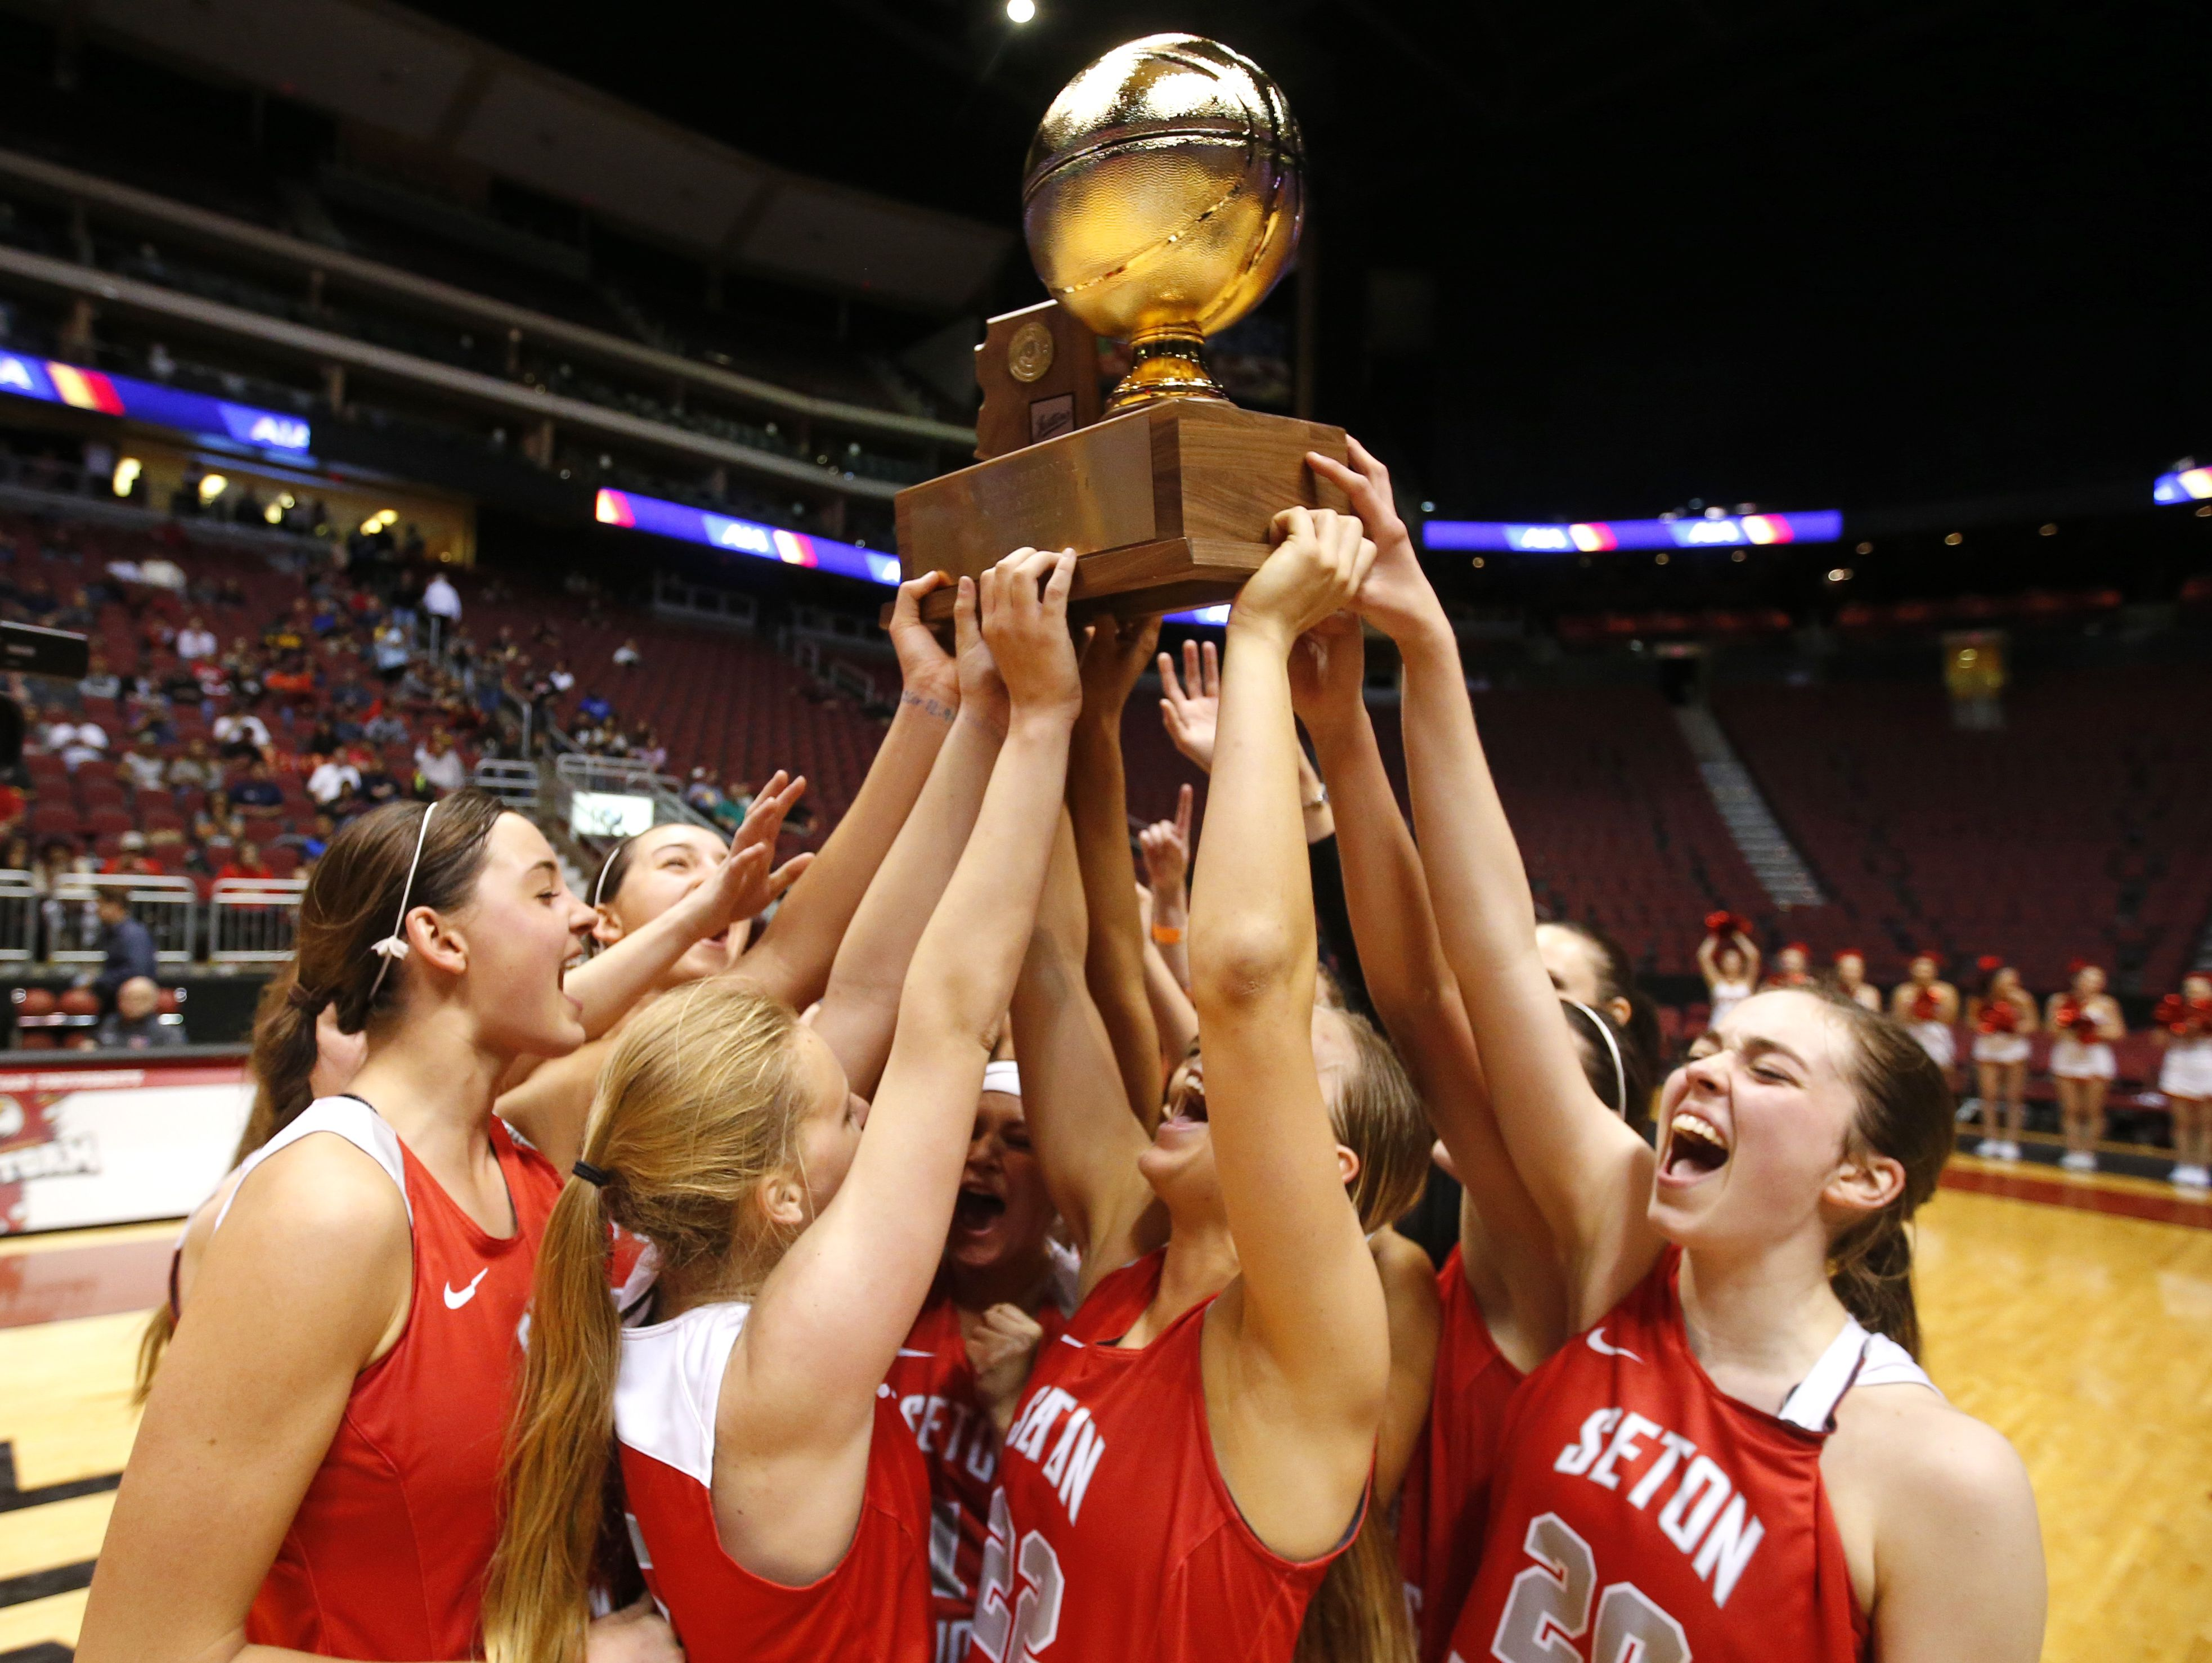 Seton Catholic celebrates after winning high school girls basketball: 4A Conference state championship game against the Cactus Shadow at Gila River Arena in Glendale on February 25, 2017.